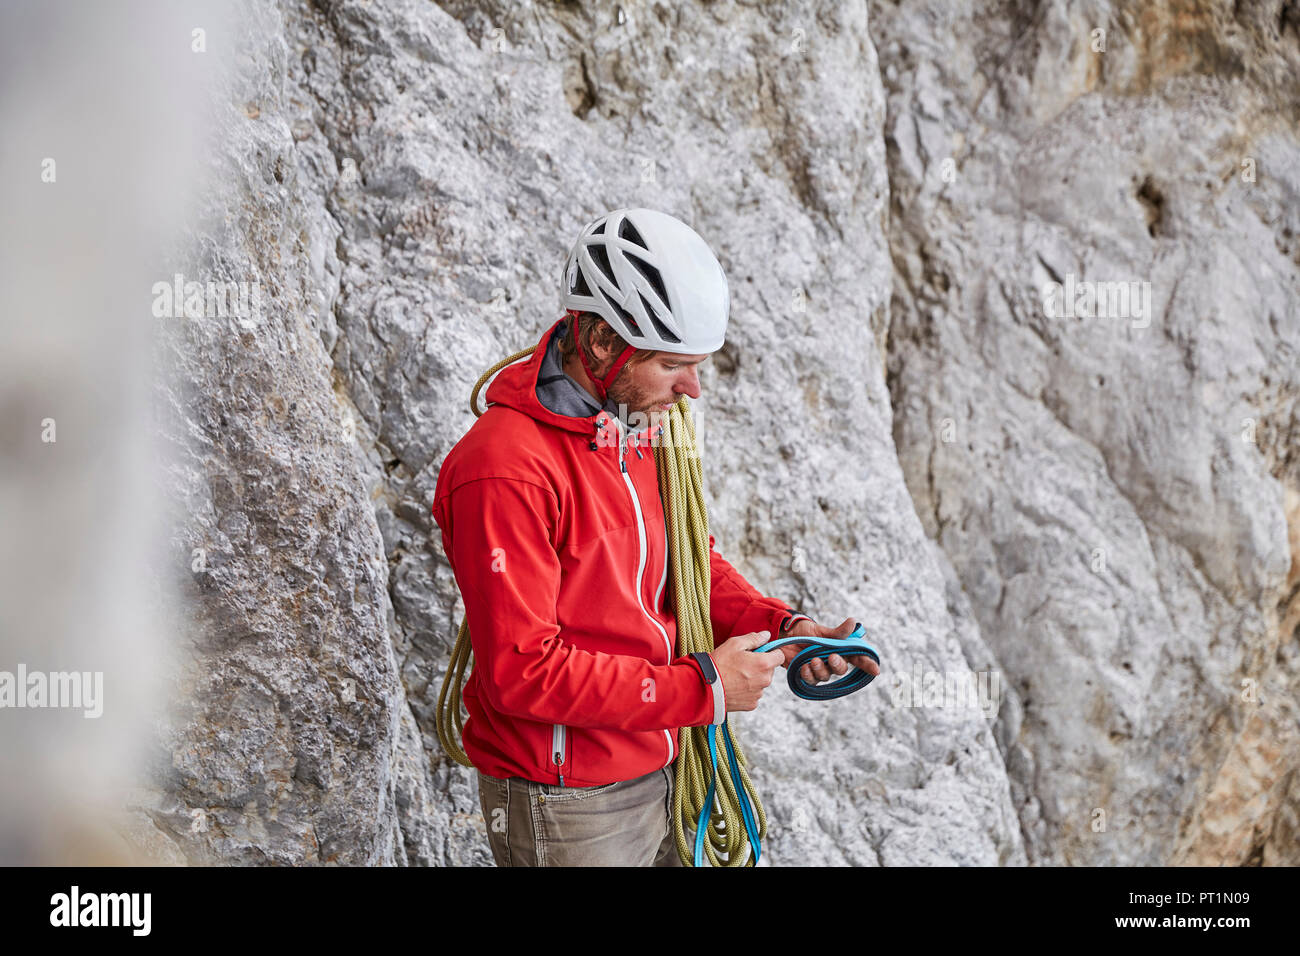 Man with rope and climbing equipment - Stock Image